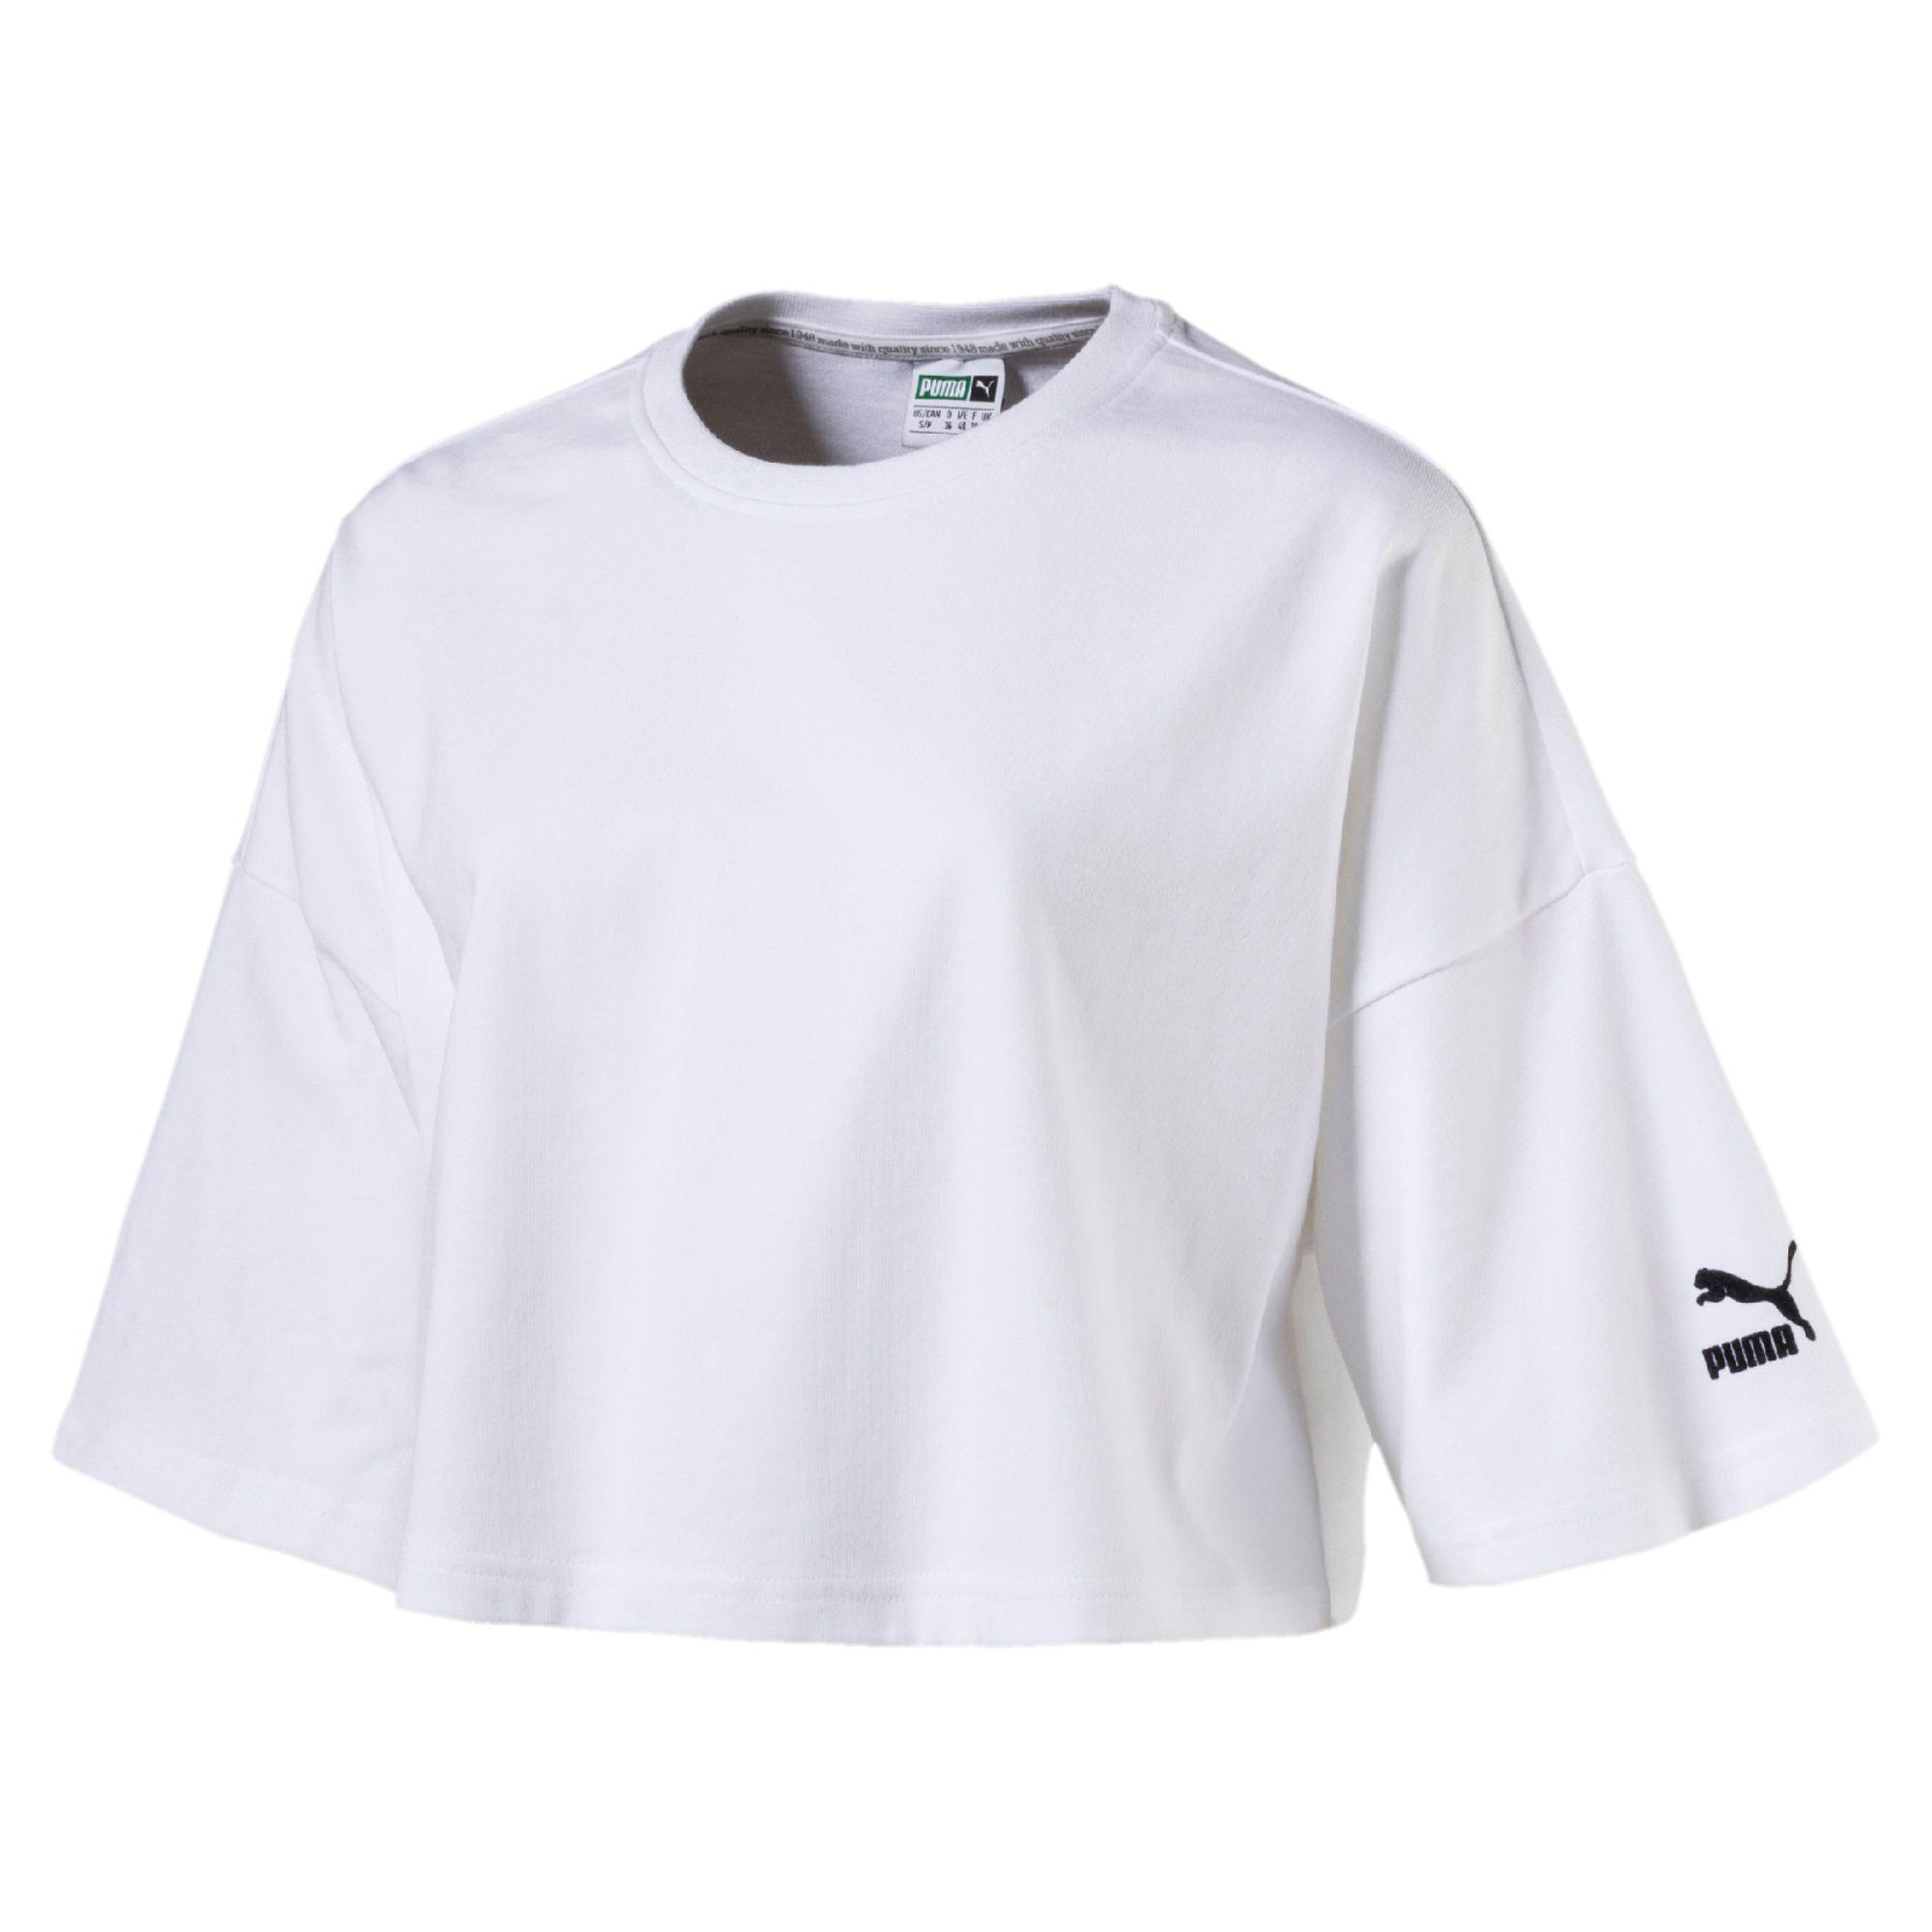 edd57d192448cc Lyst - PUMA Archive Women s Xtreme Cropped Top in White